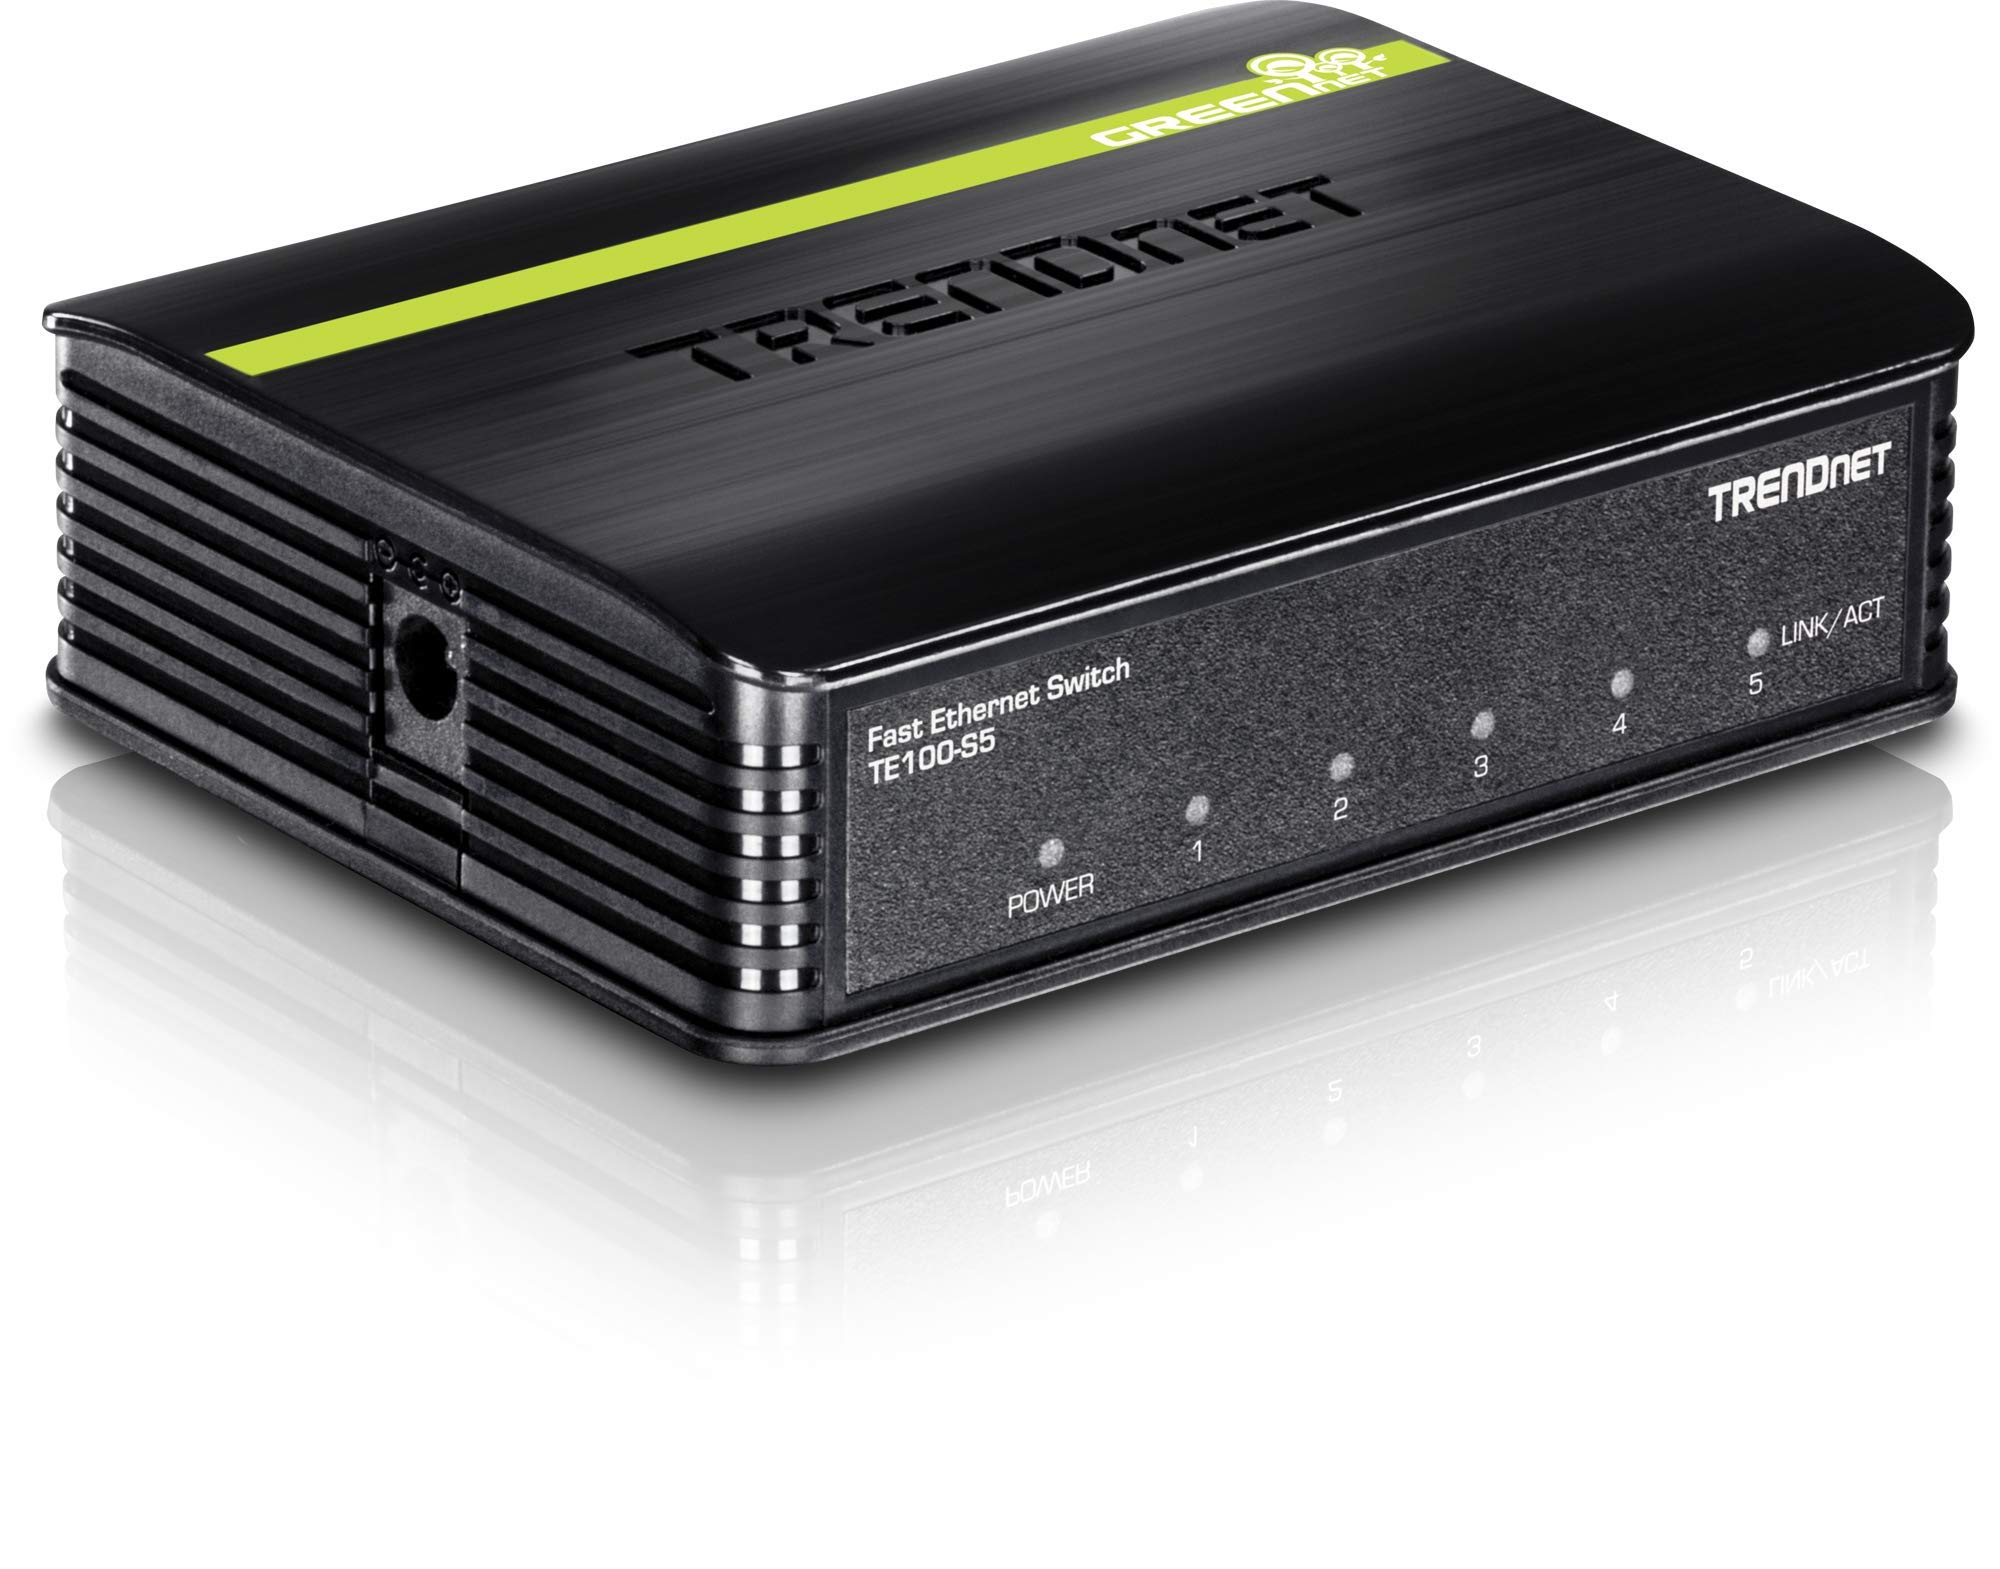 TRENDnet 5-Port Unmanaged 10/100 Mbps GREENnet Ethernet Desktop Plastic Housing Switch, 5 X 10/100 Mbps Ports, 1Gbps Switching Capacity, TE100-S5 by TRENDnet